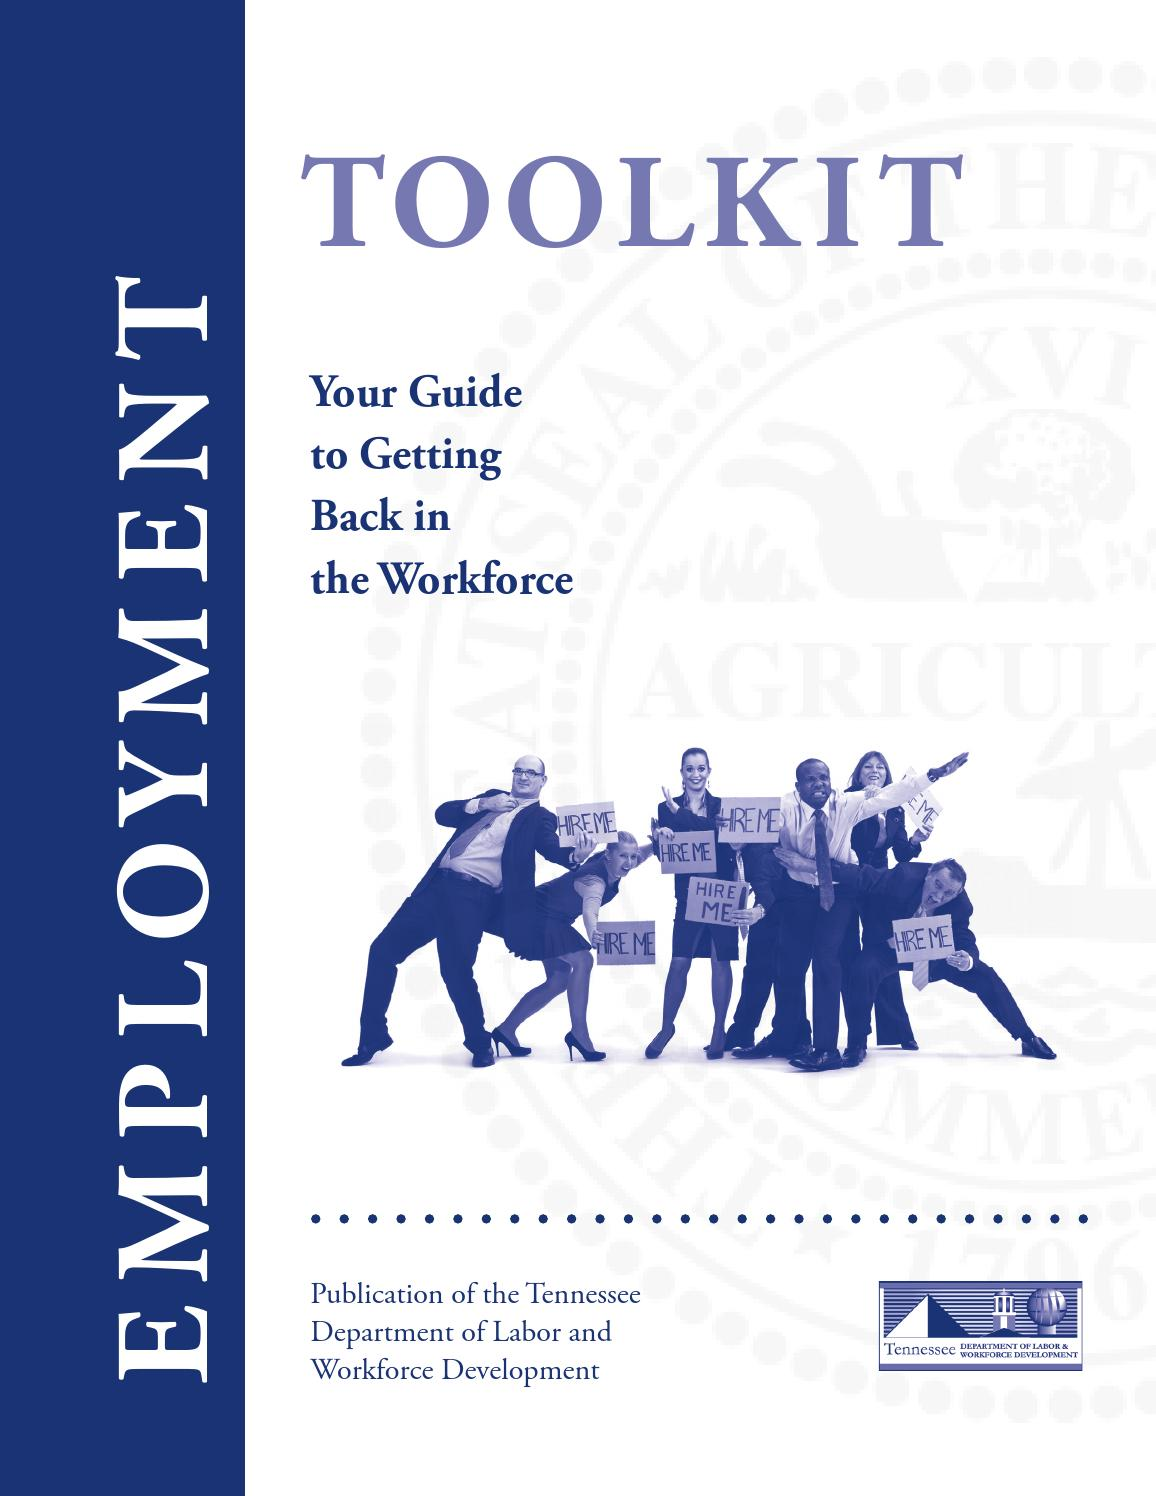 Unemployment Toolkit By Tn Department Of Labor Workforce